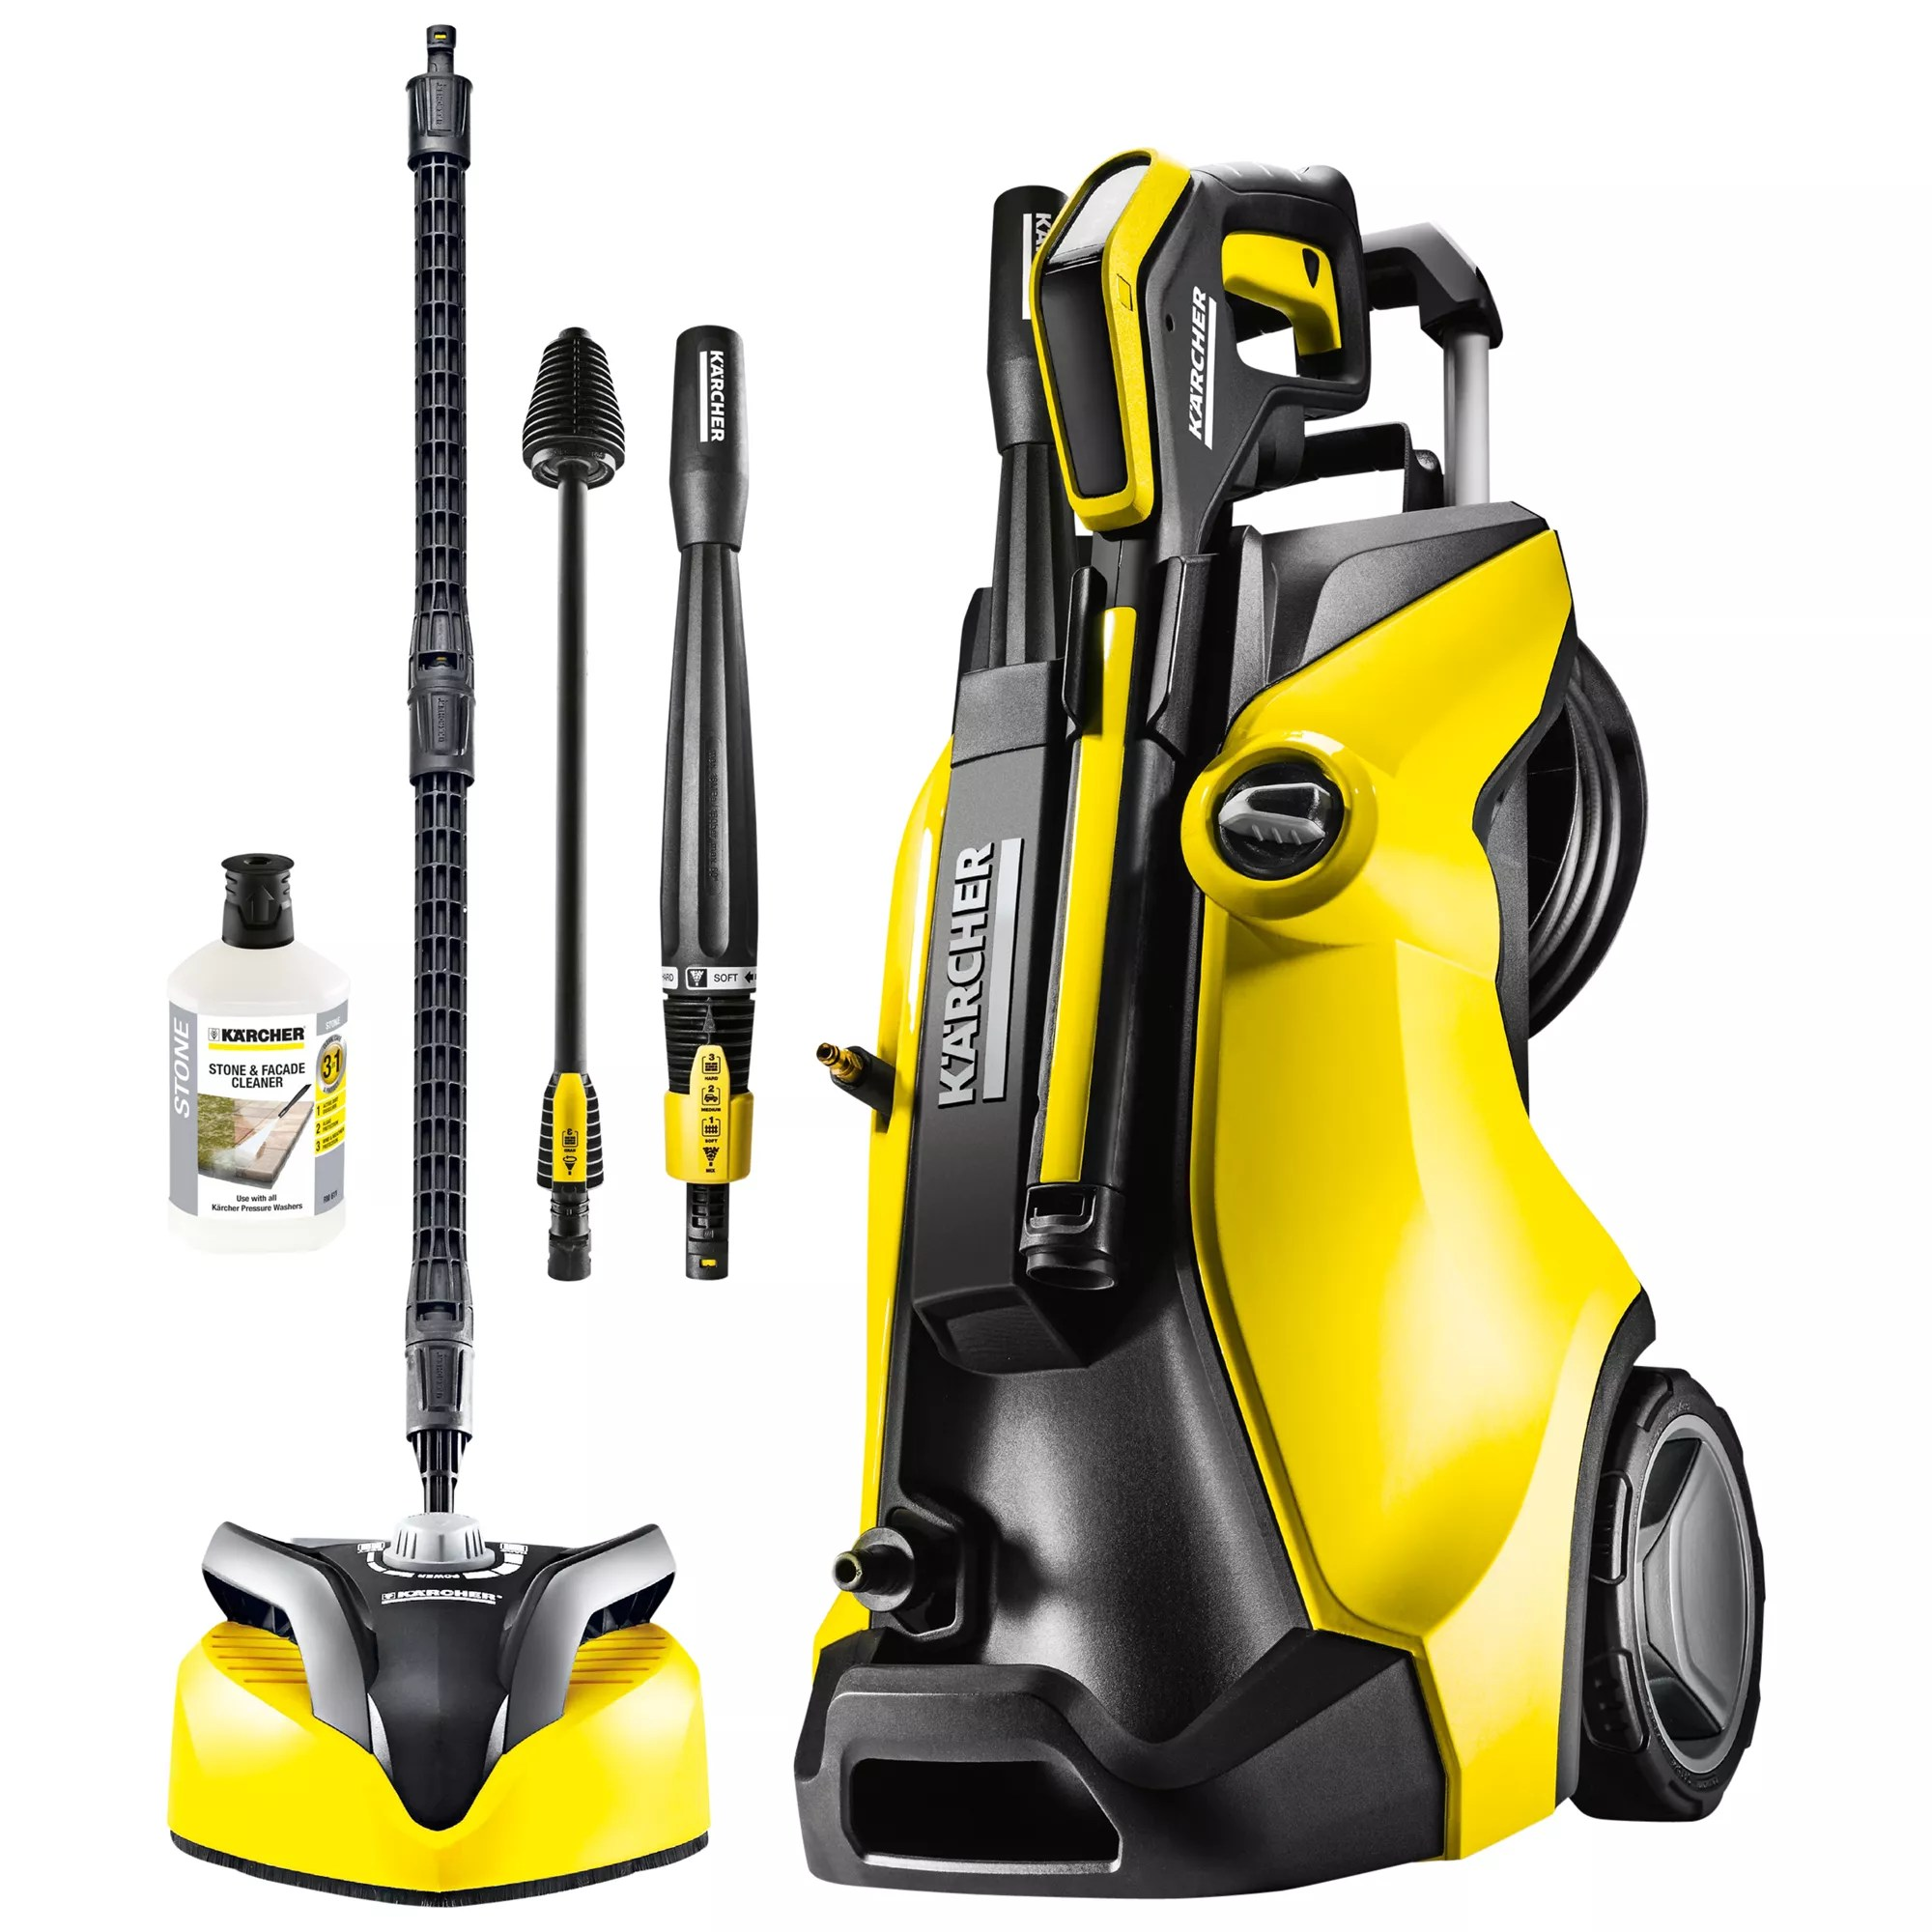 Karcher Reiniger Kärcher K7 Premium Full Control Home Pressure Washer At John Lewis